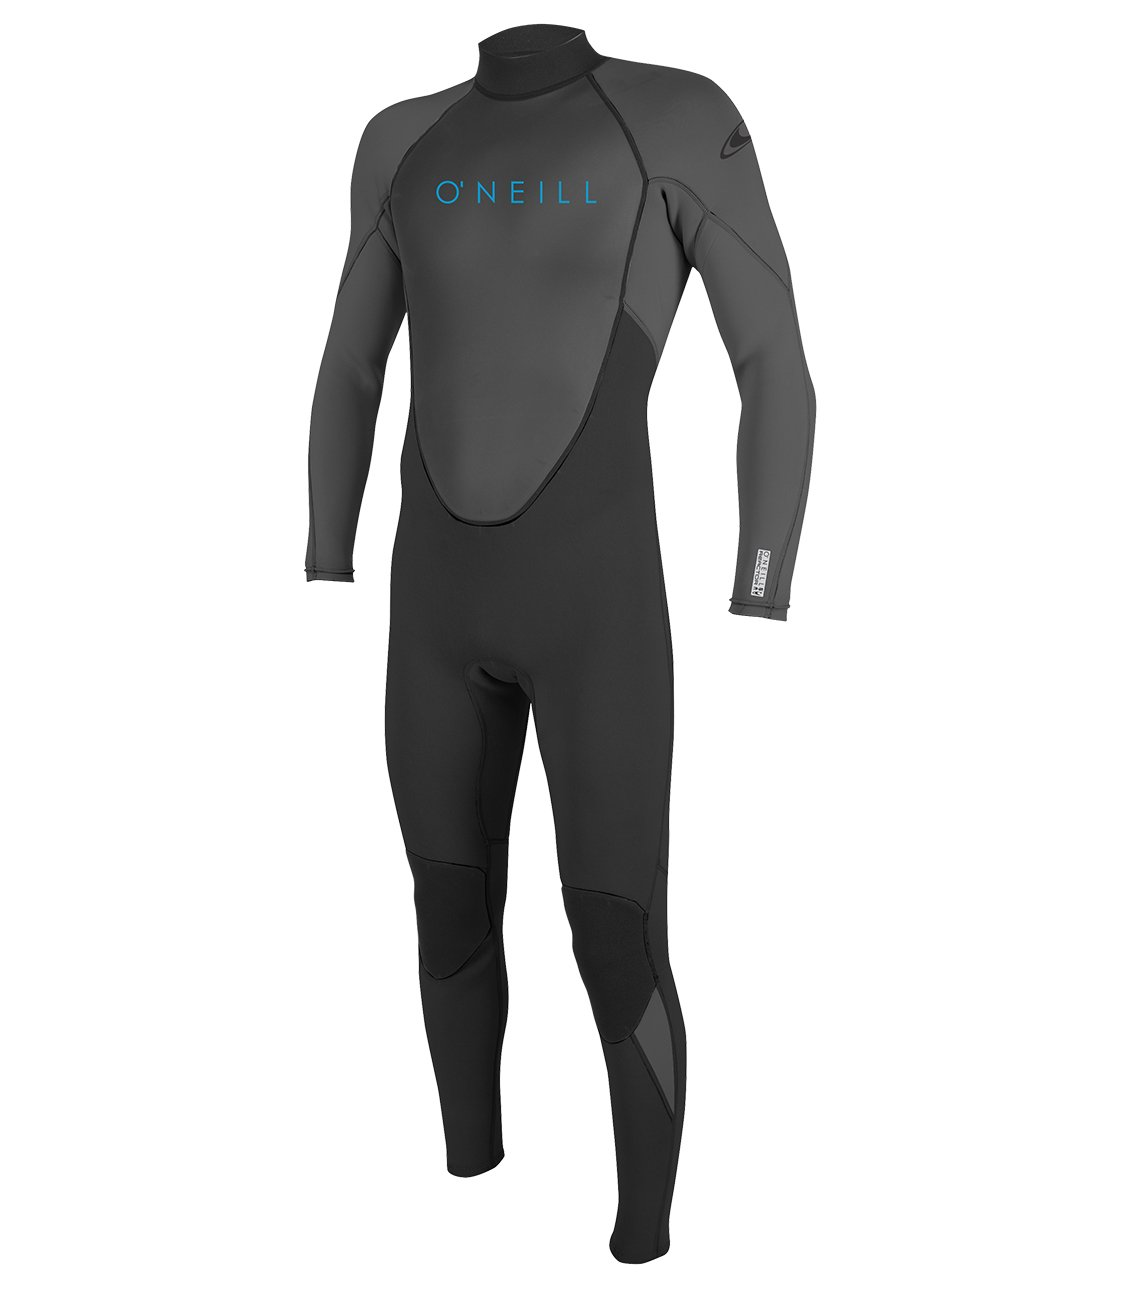 O'Neill Youth Reactor-2 3/2mm Back Zip Full Wetsuit, Black/Graphite, 6 by O'Neill Wetsuits